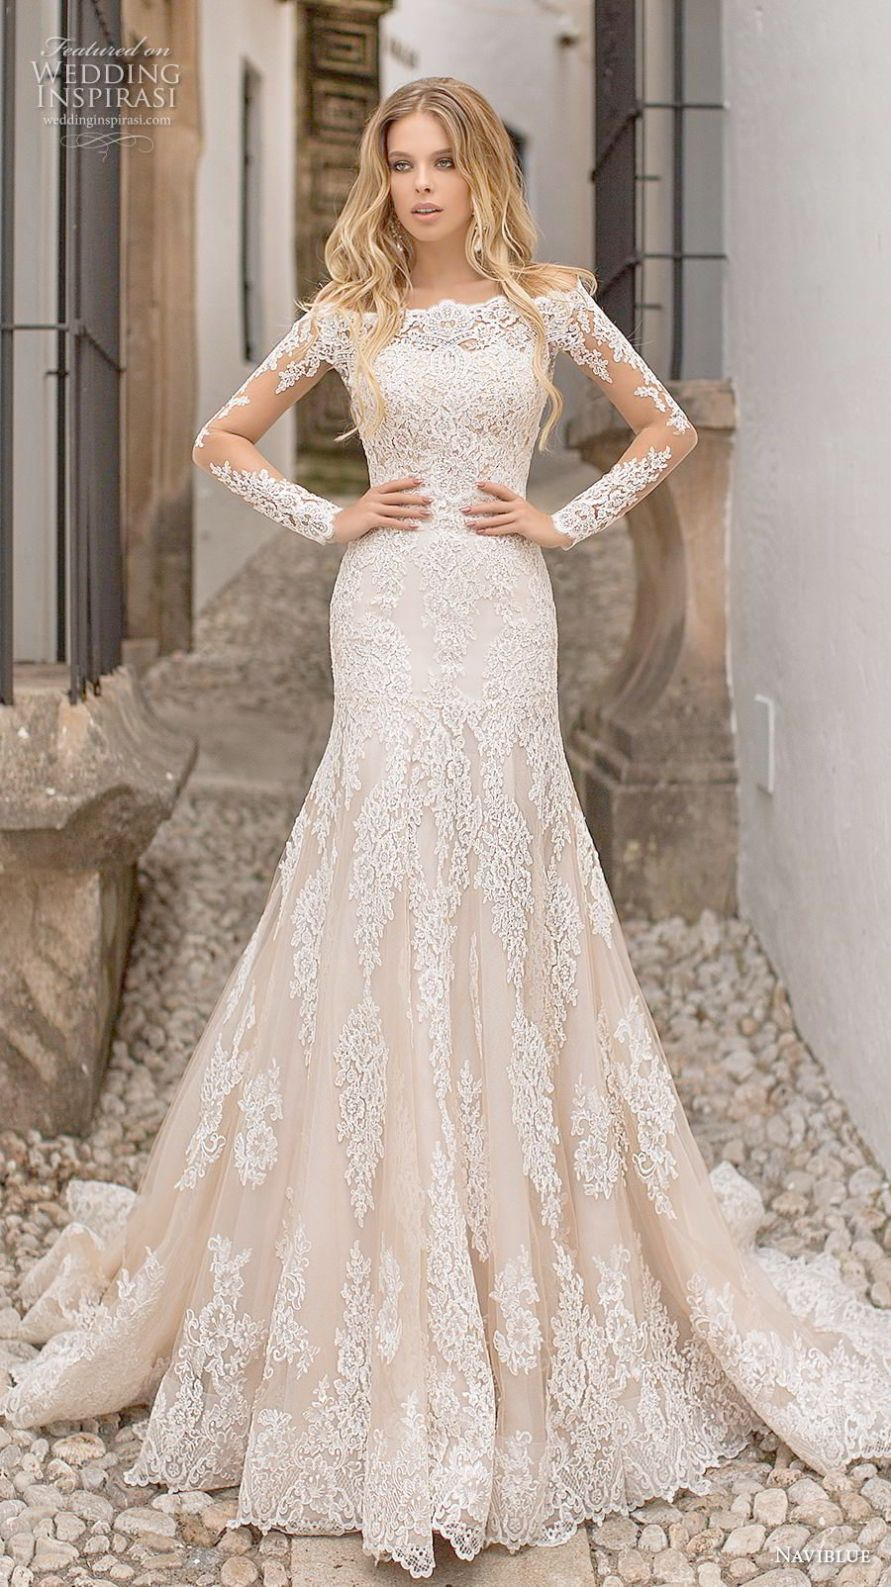 Lace dress for wedding  Lace Tulle Princess Wedding Dress Strapless Wedding Dresses With